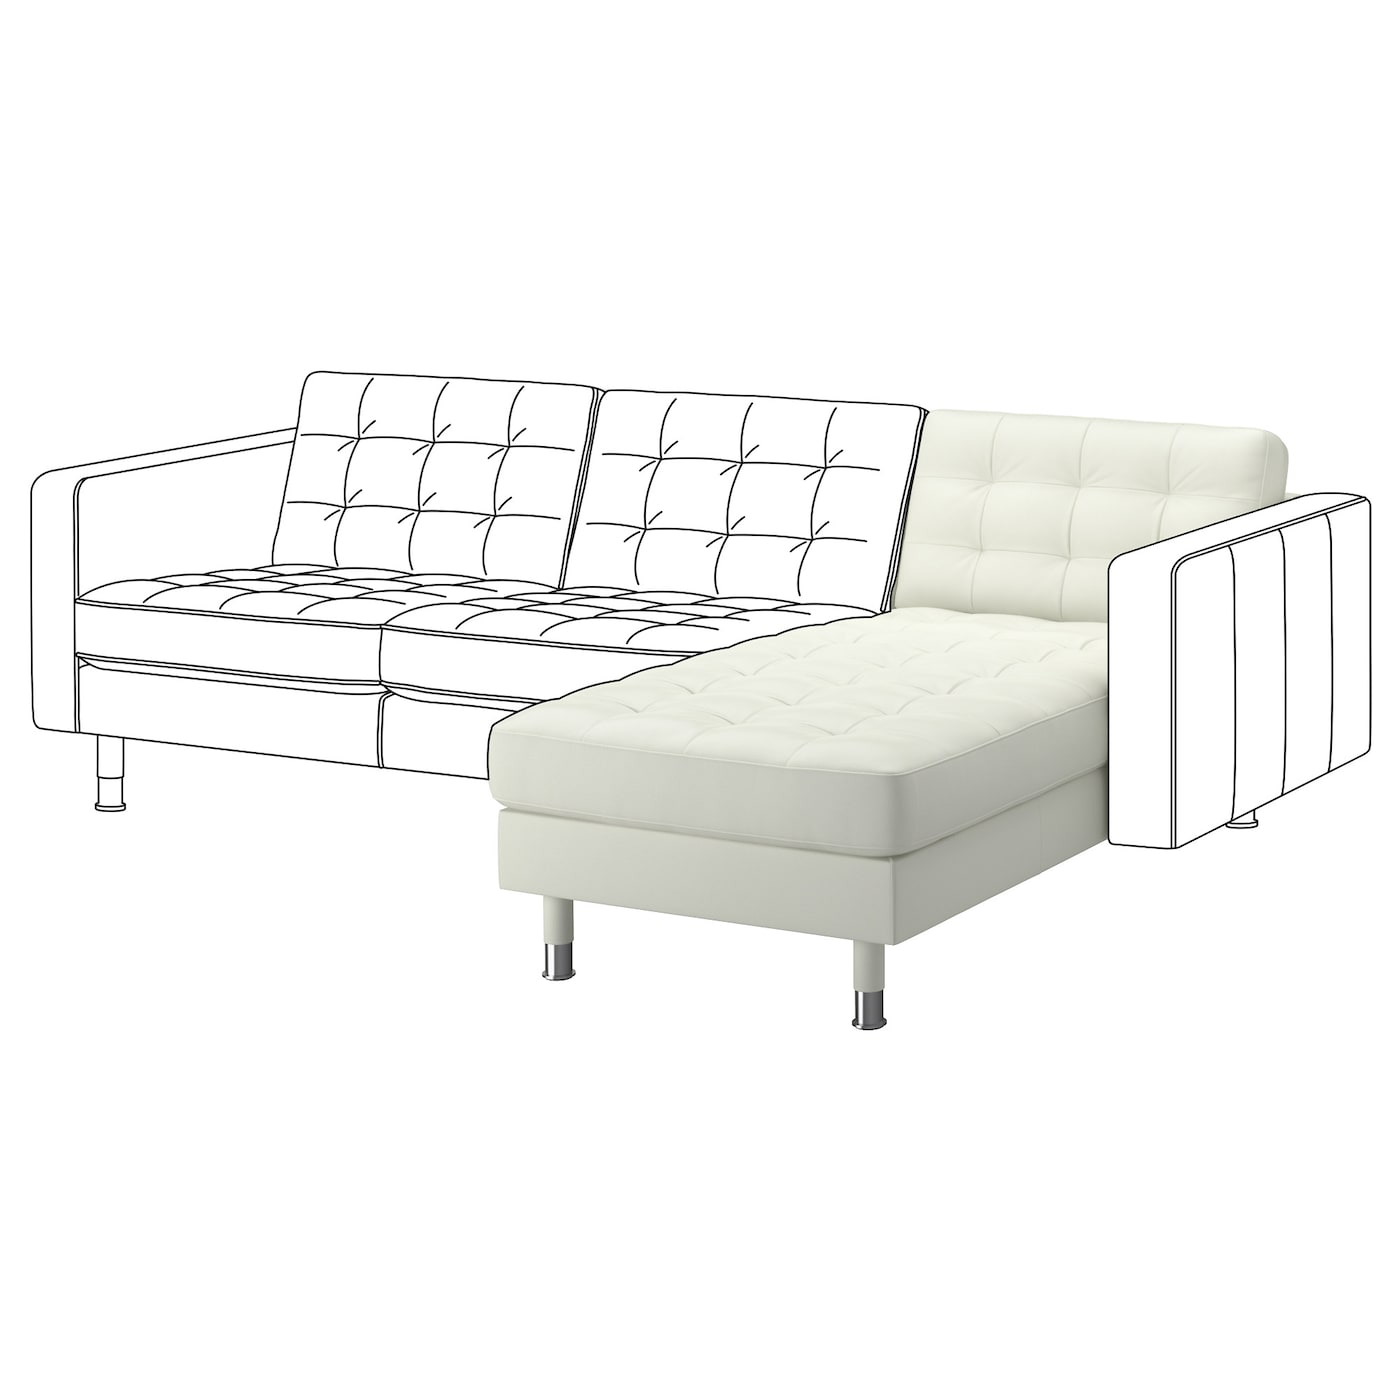 Landskrona chaise longue add on unit grann bomstad white for Chaise longue jardin ikea